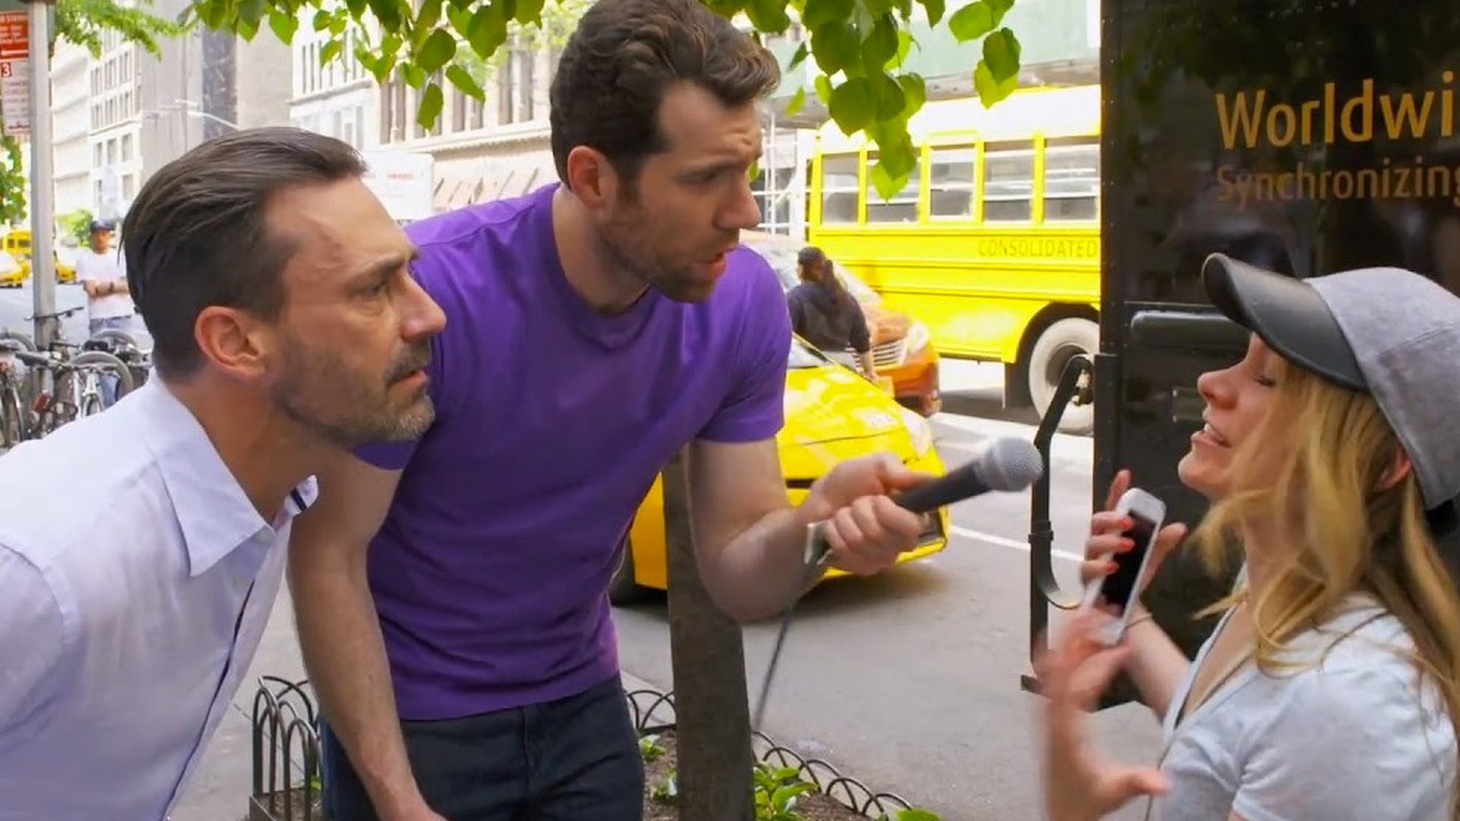 Billy Eichner has had recent roles in Hulu's Difficult People, Netflix's Friends from College, and in the upcoming season of American Horror Story on FX. But it's through his truTV game show, Billy on the Street, that he's in the Emmy race. He tells us about the evolution of his person-on-the-street antics and why not every celebrity is a good fit for the show.